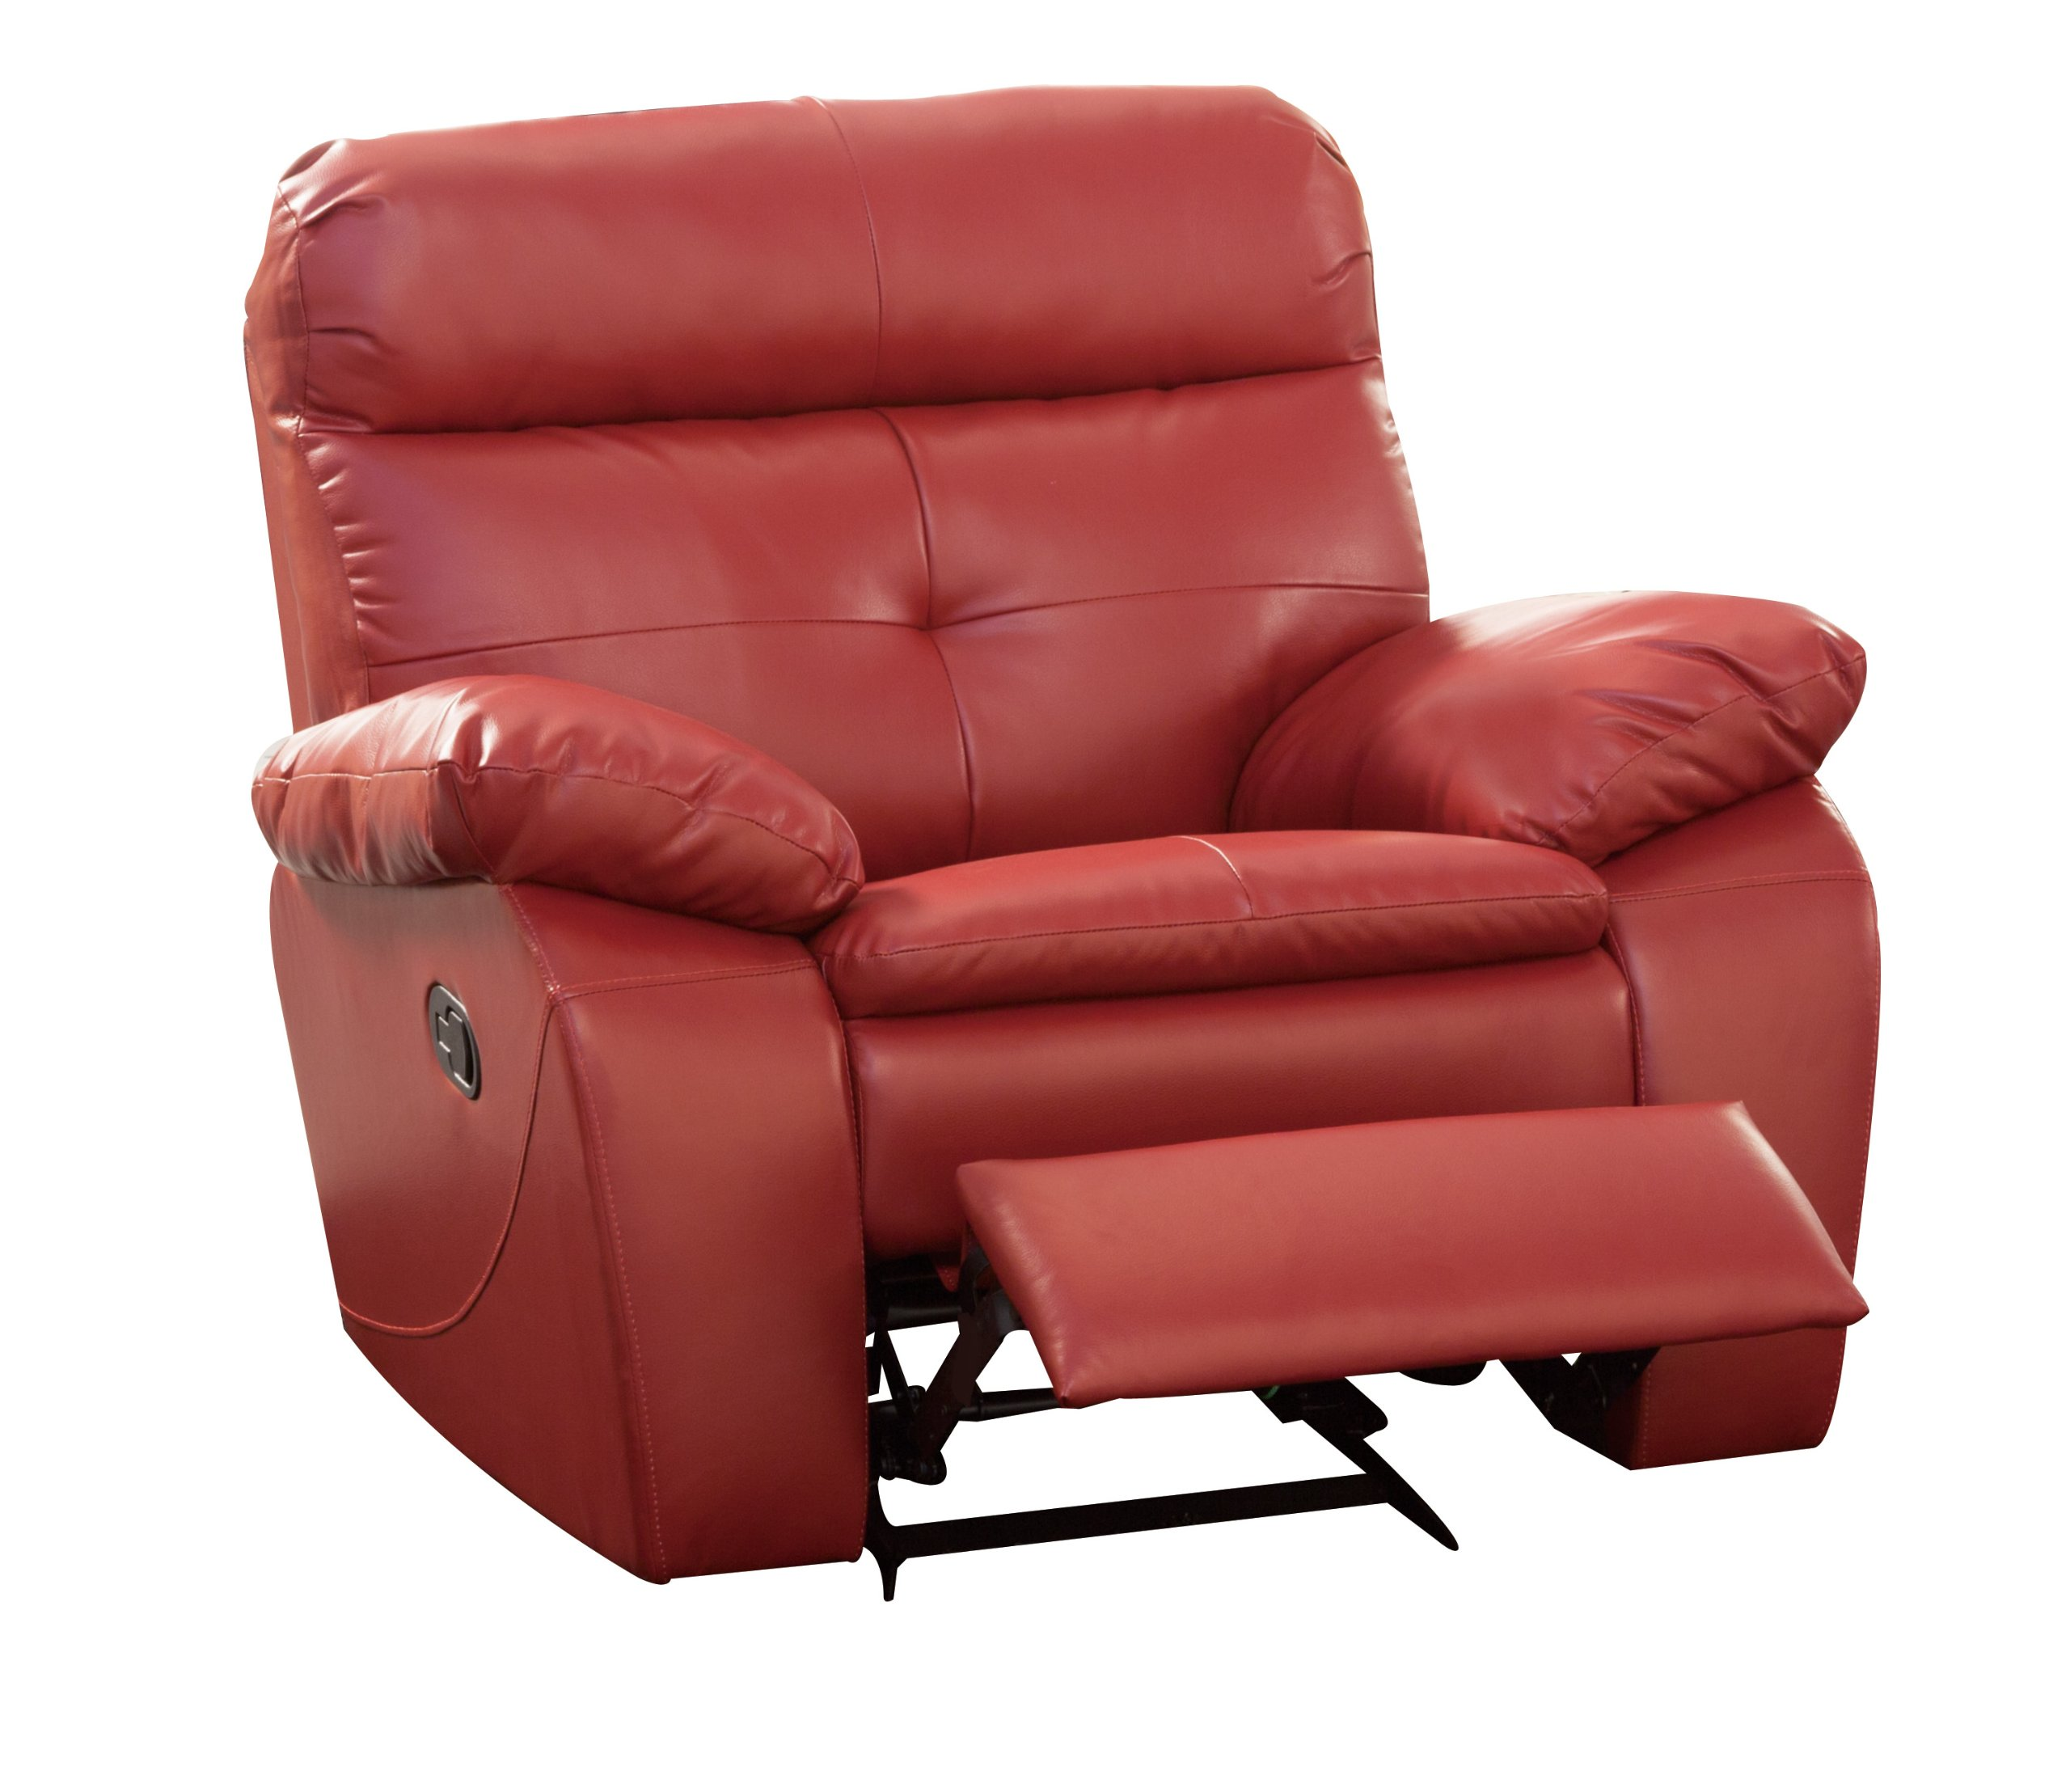 Homelegance 9604red 1 Wallace Glider Recliner Chair Lava